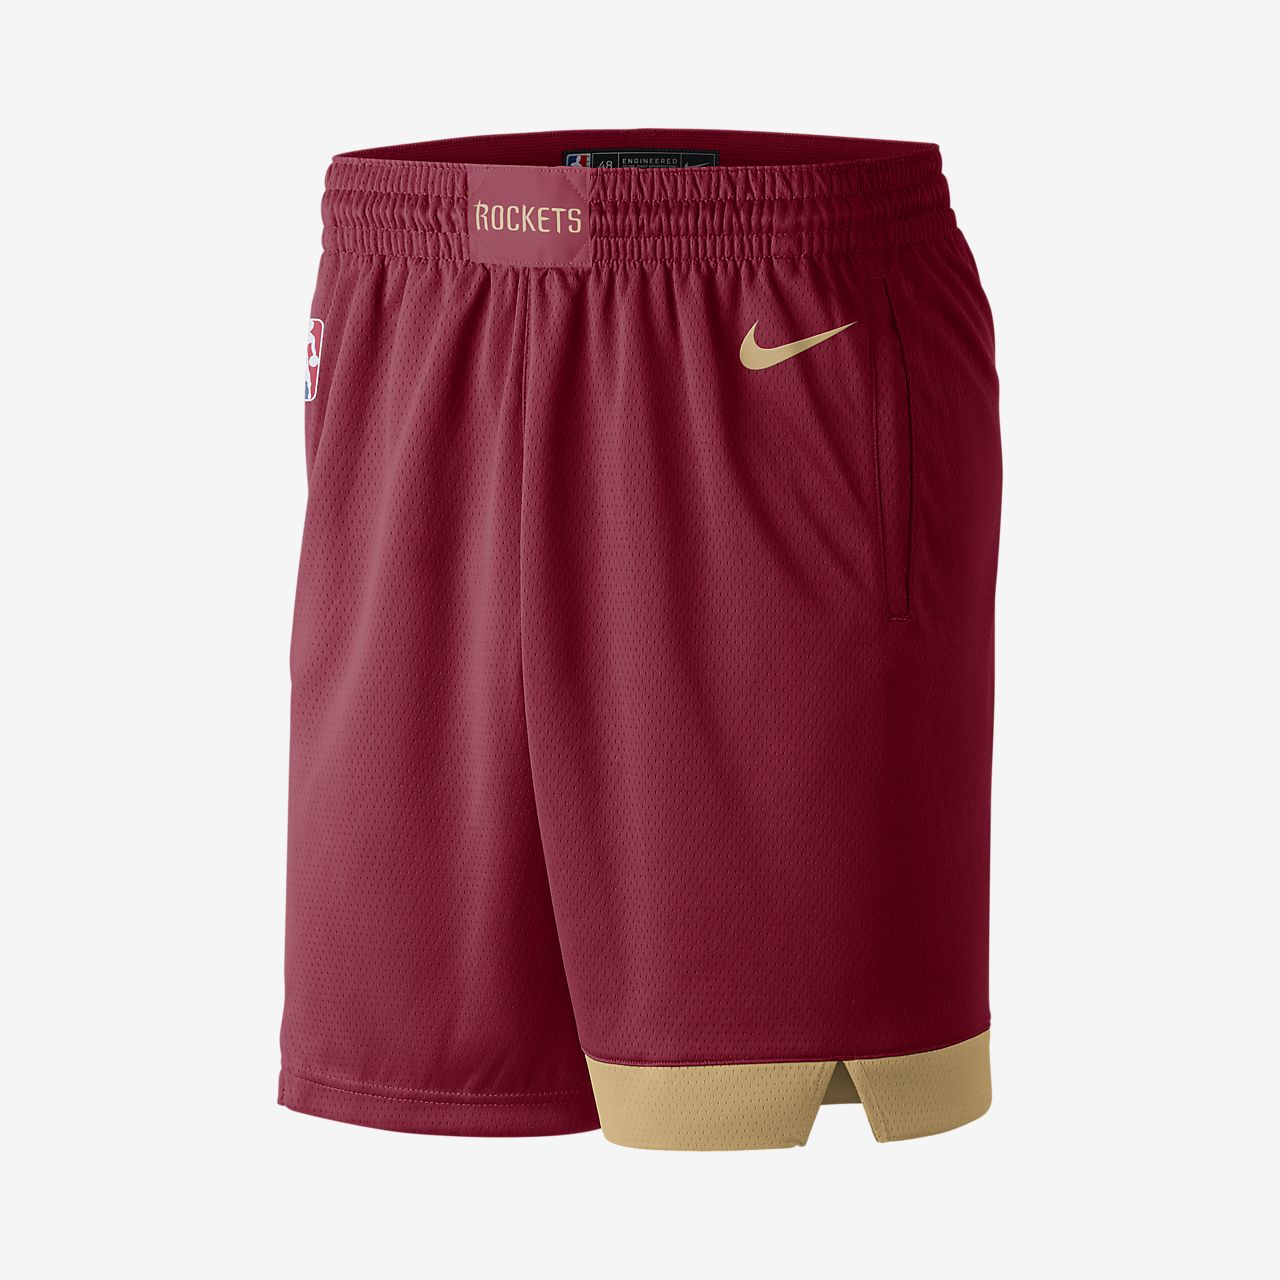 Houston Rockets City Edition Swingman Nike NBA-shorts för män